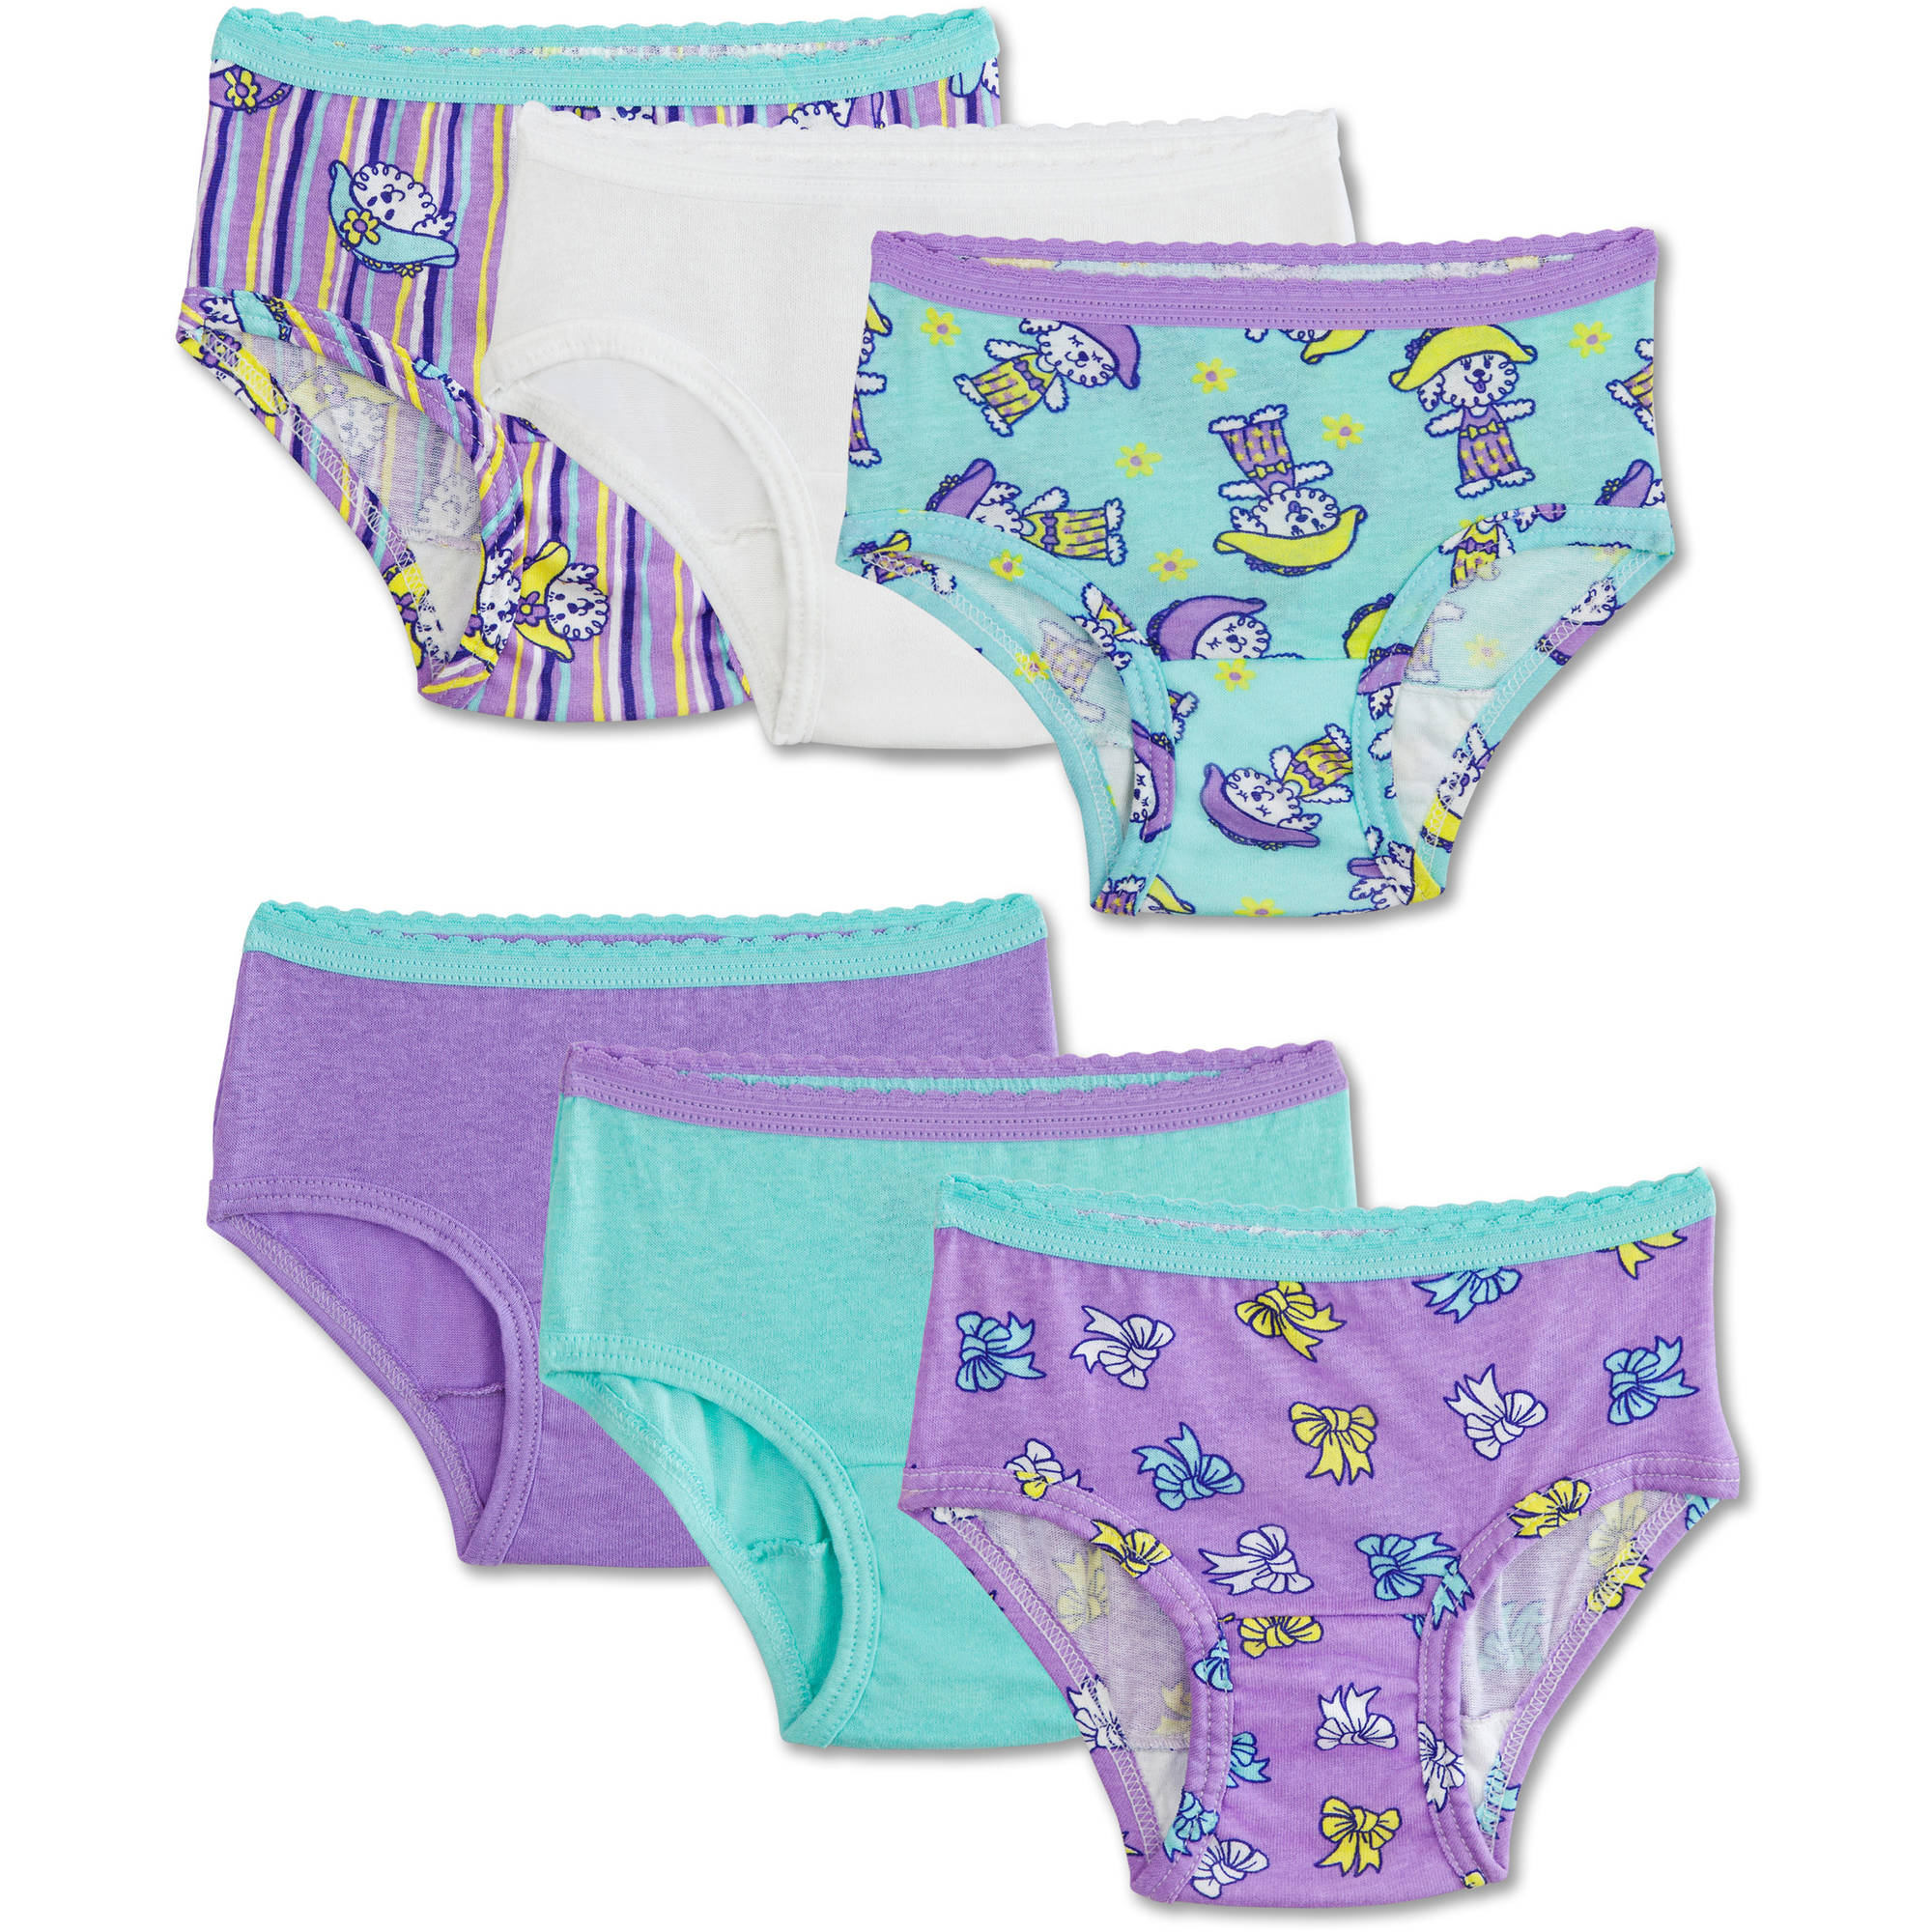 Fruit of the Loom Toddler Girls 100% Cotton Brief Underwear Panties, 6 Pack